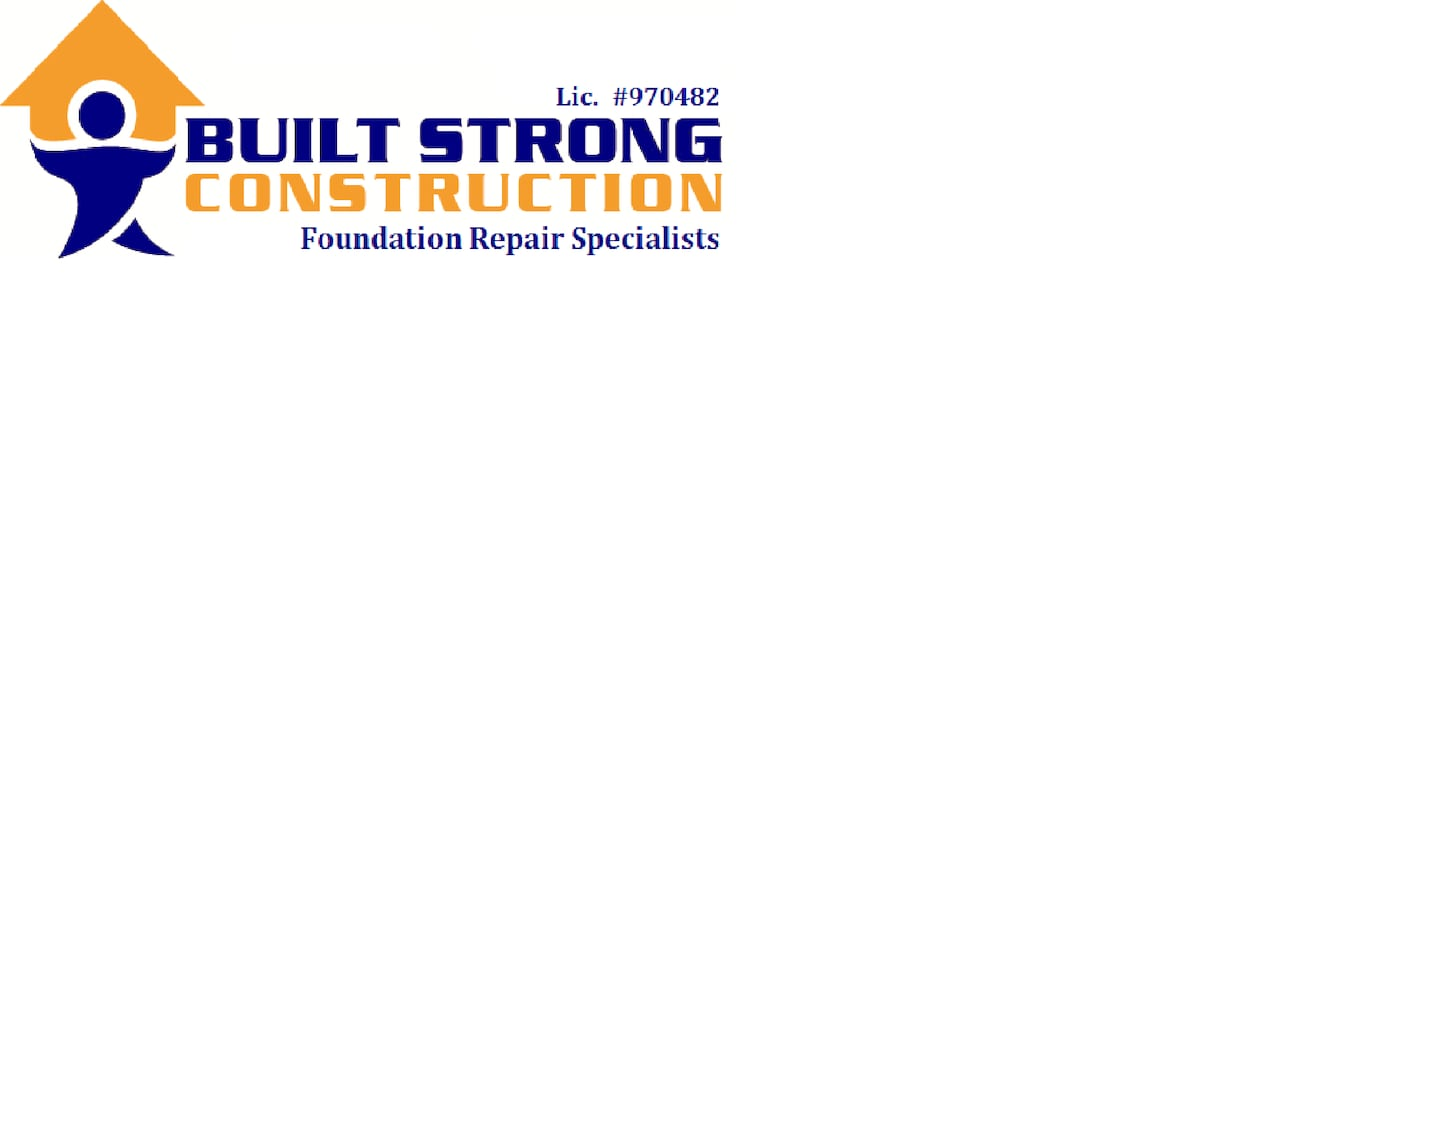 Built Strong Construction